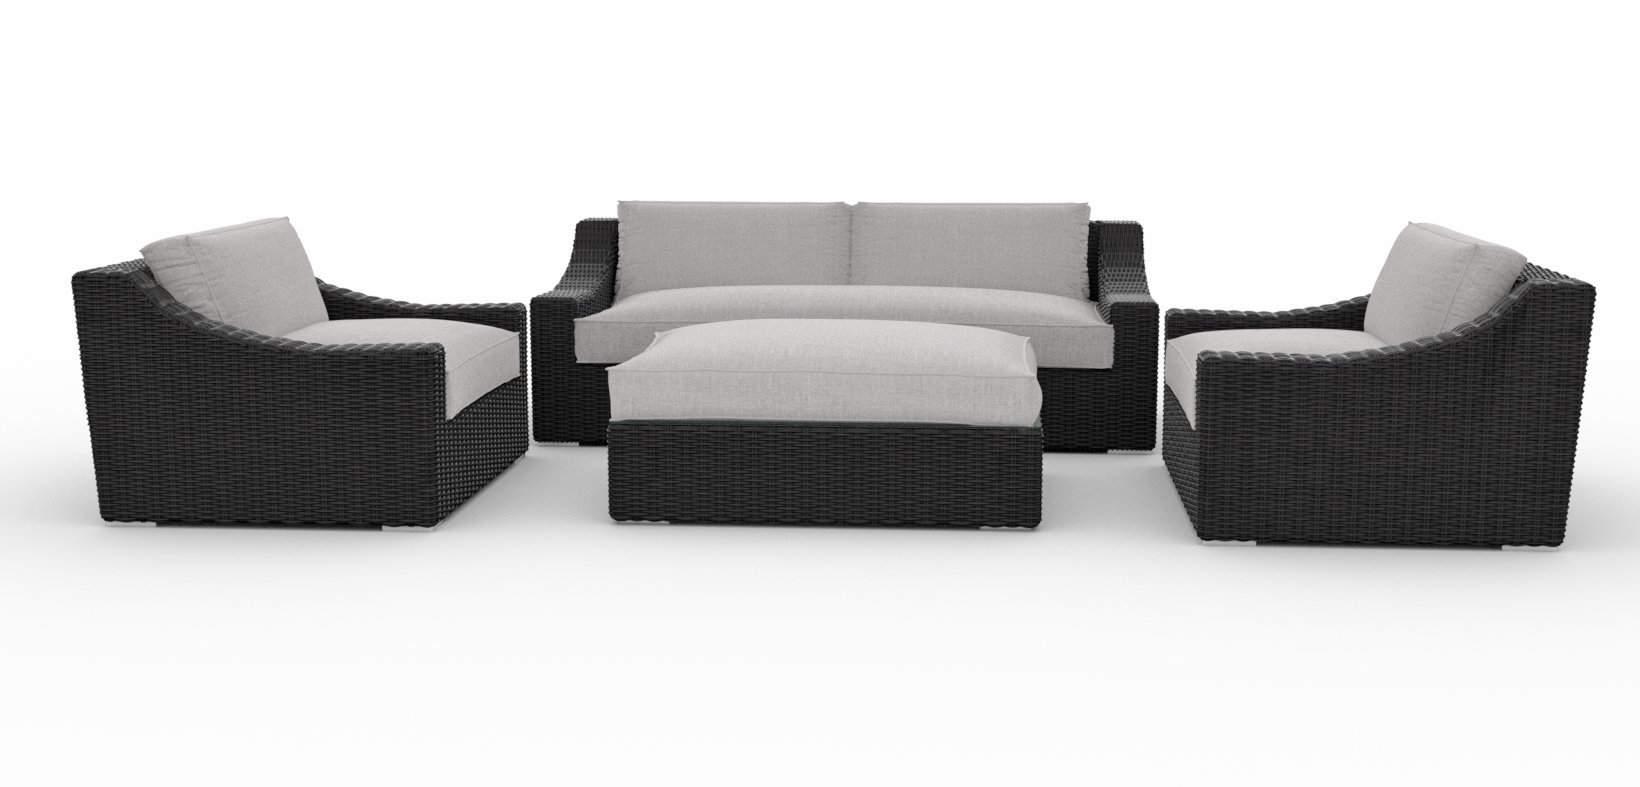 Toja Bretton Outdoor Patio Sofa Set (4 pcs) | Wicker Rattan Body with Sunbrella Cushions (Cast Silver) - BEAUTIFUL DESIGN & UNMATCHED COMFORT - Our Bretton line has a higher back and modern sloping arms. The durable PE wicker body has a modern design that looks great on any patio or in any outdoor area. High-density foam cushions provide unmatched comfort and ample seating space. ALL-WEATHER DURABLE WICKER BODY - This couch set's durable construction ensure that you'll enjoy your Toja furniture for years to come. The furniture's powder coated aluminum frame is covered in a tight double weave of durable PE wicker rattan. SUNBRELLA CUSHIONS - The patio furniture set's cushions are crafted from high-density foam and a soft Sunbrella fabric which resists fading and keeps your furniture looking new. Along with being stain and mildew resistant, the Sunbrella fabric is suitable for all types of weather and provides unmatched protection from rain, sun, and other elements. - patio-furniture, patio, conversation-sets - 61CpXP1PCrL -